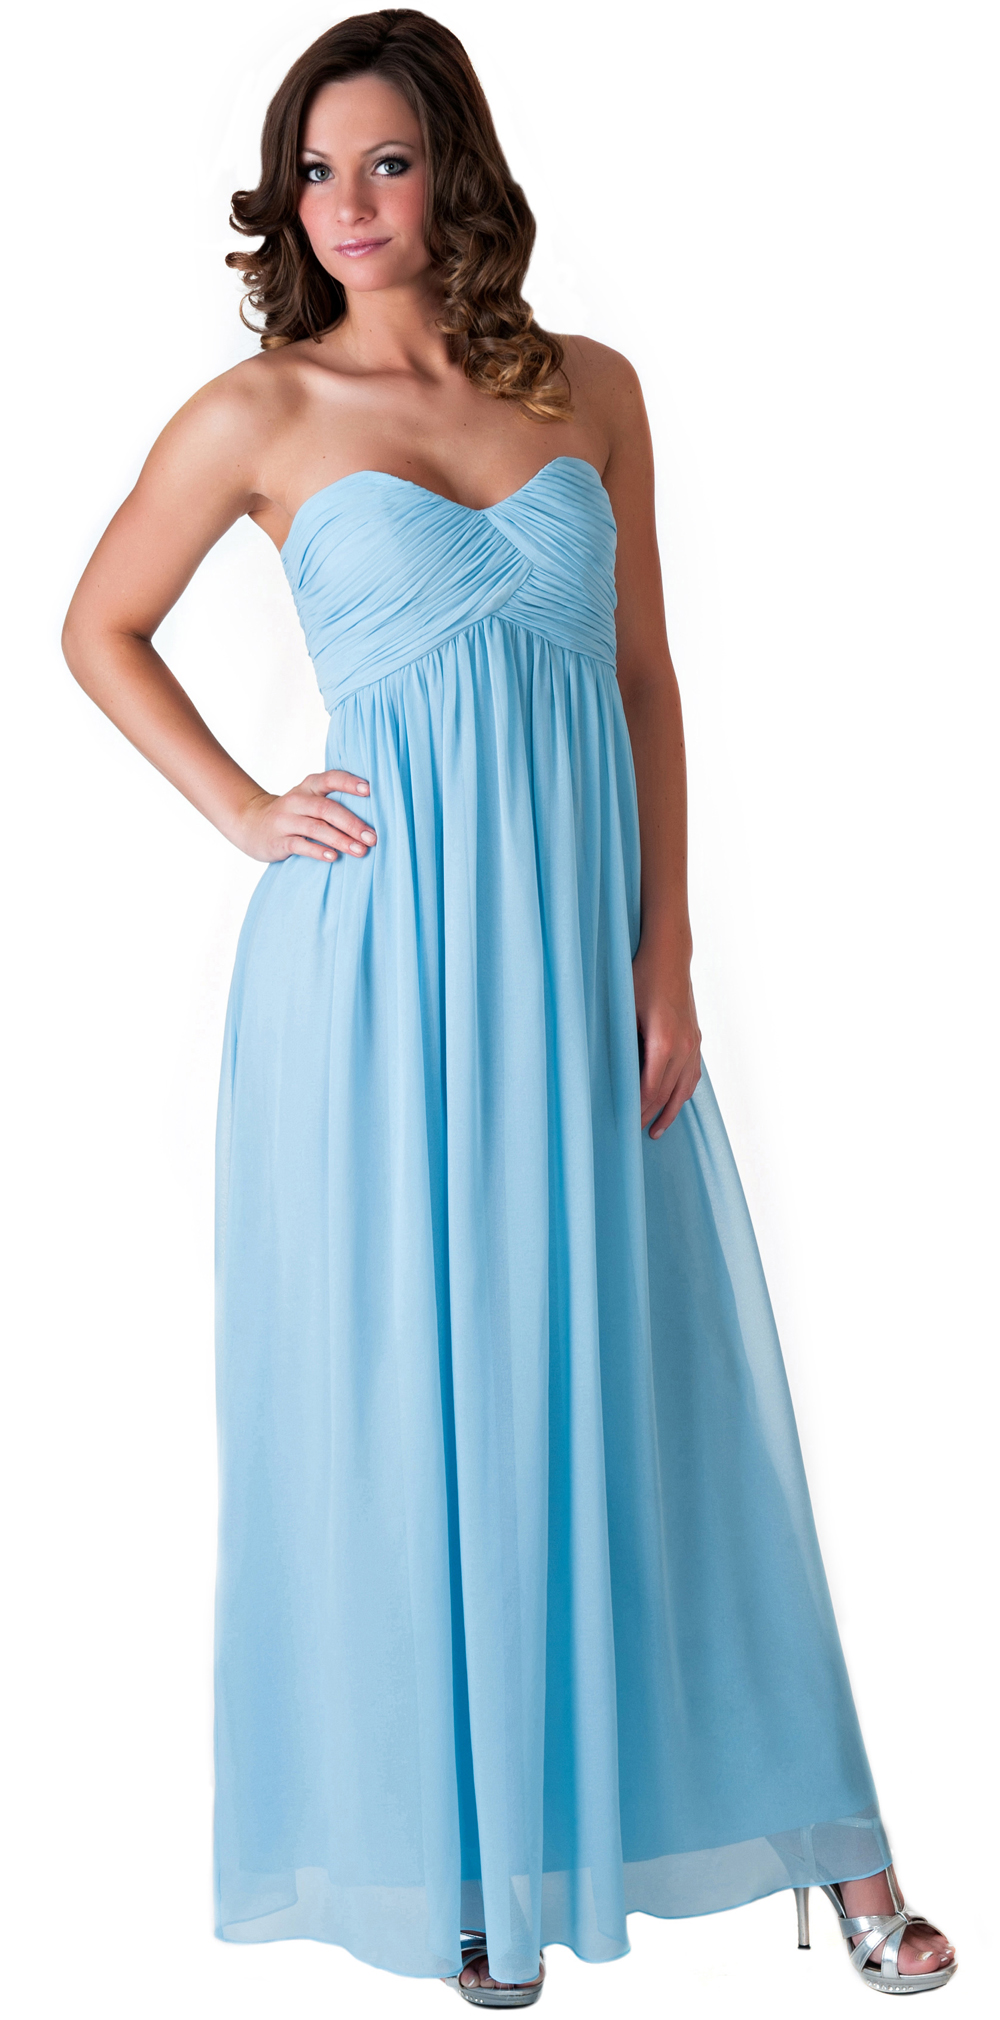 Formal dress full length evening gown bridesmaid wedding for Evening gown as wedding dress